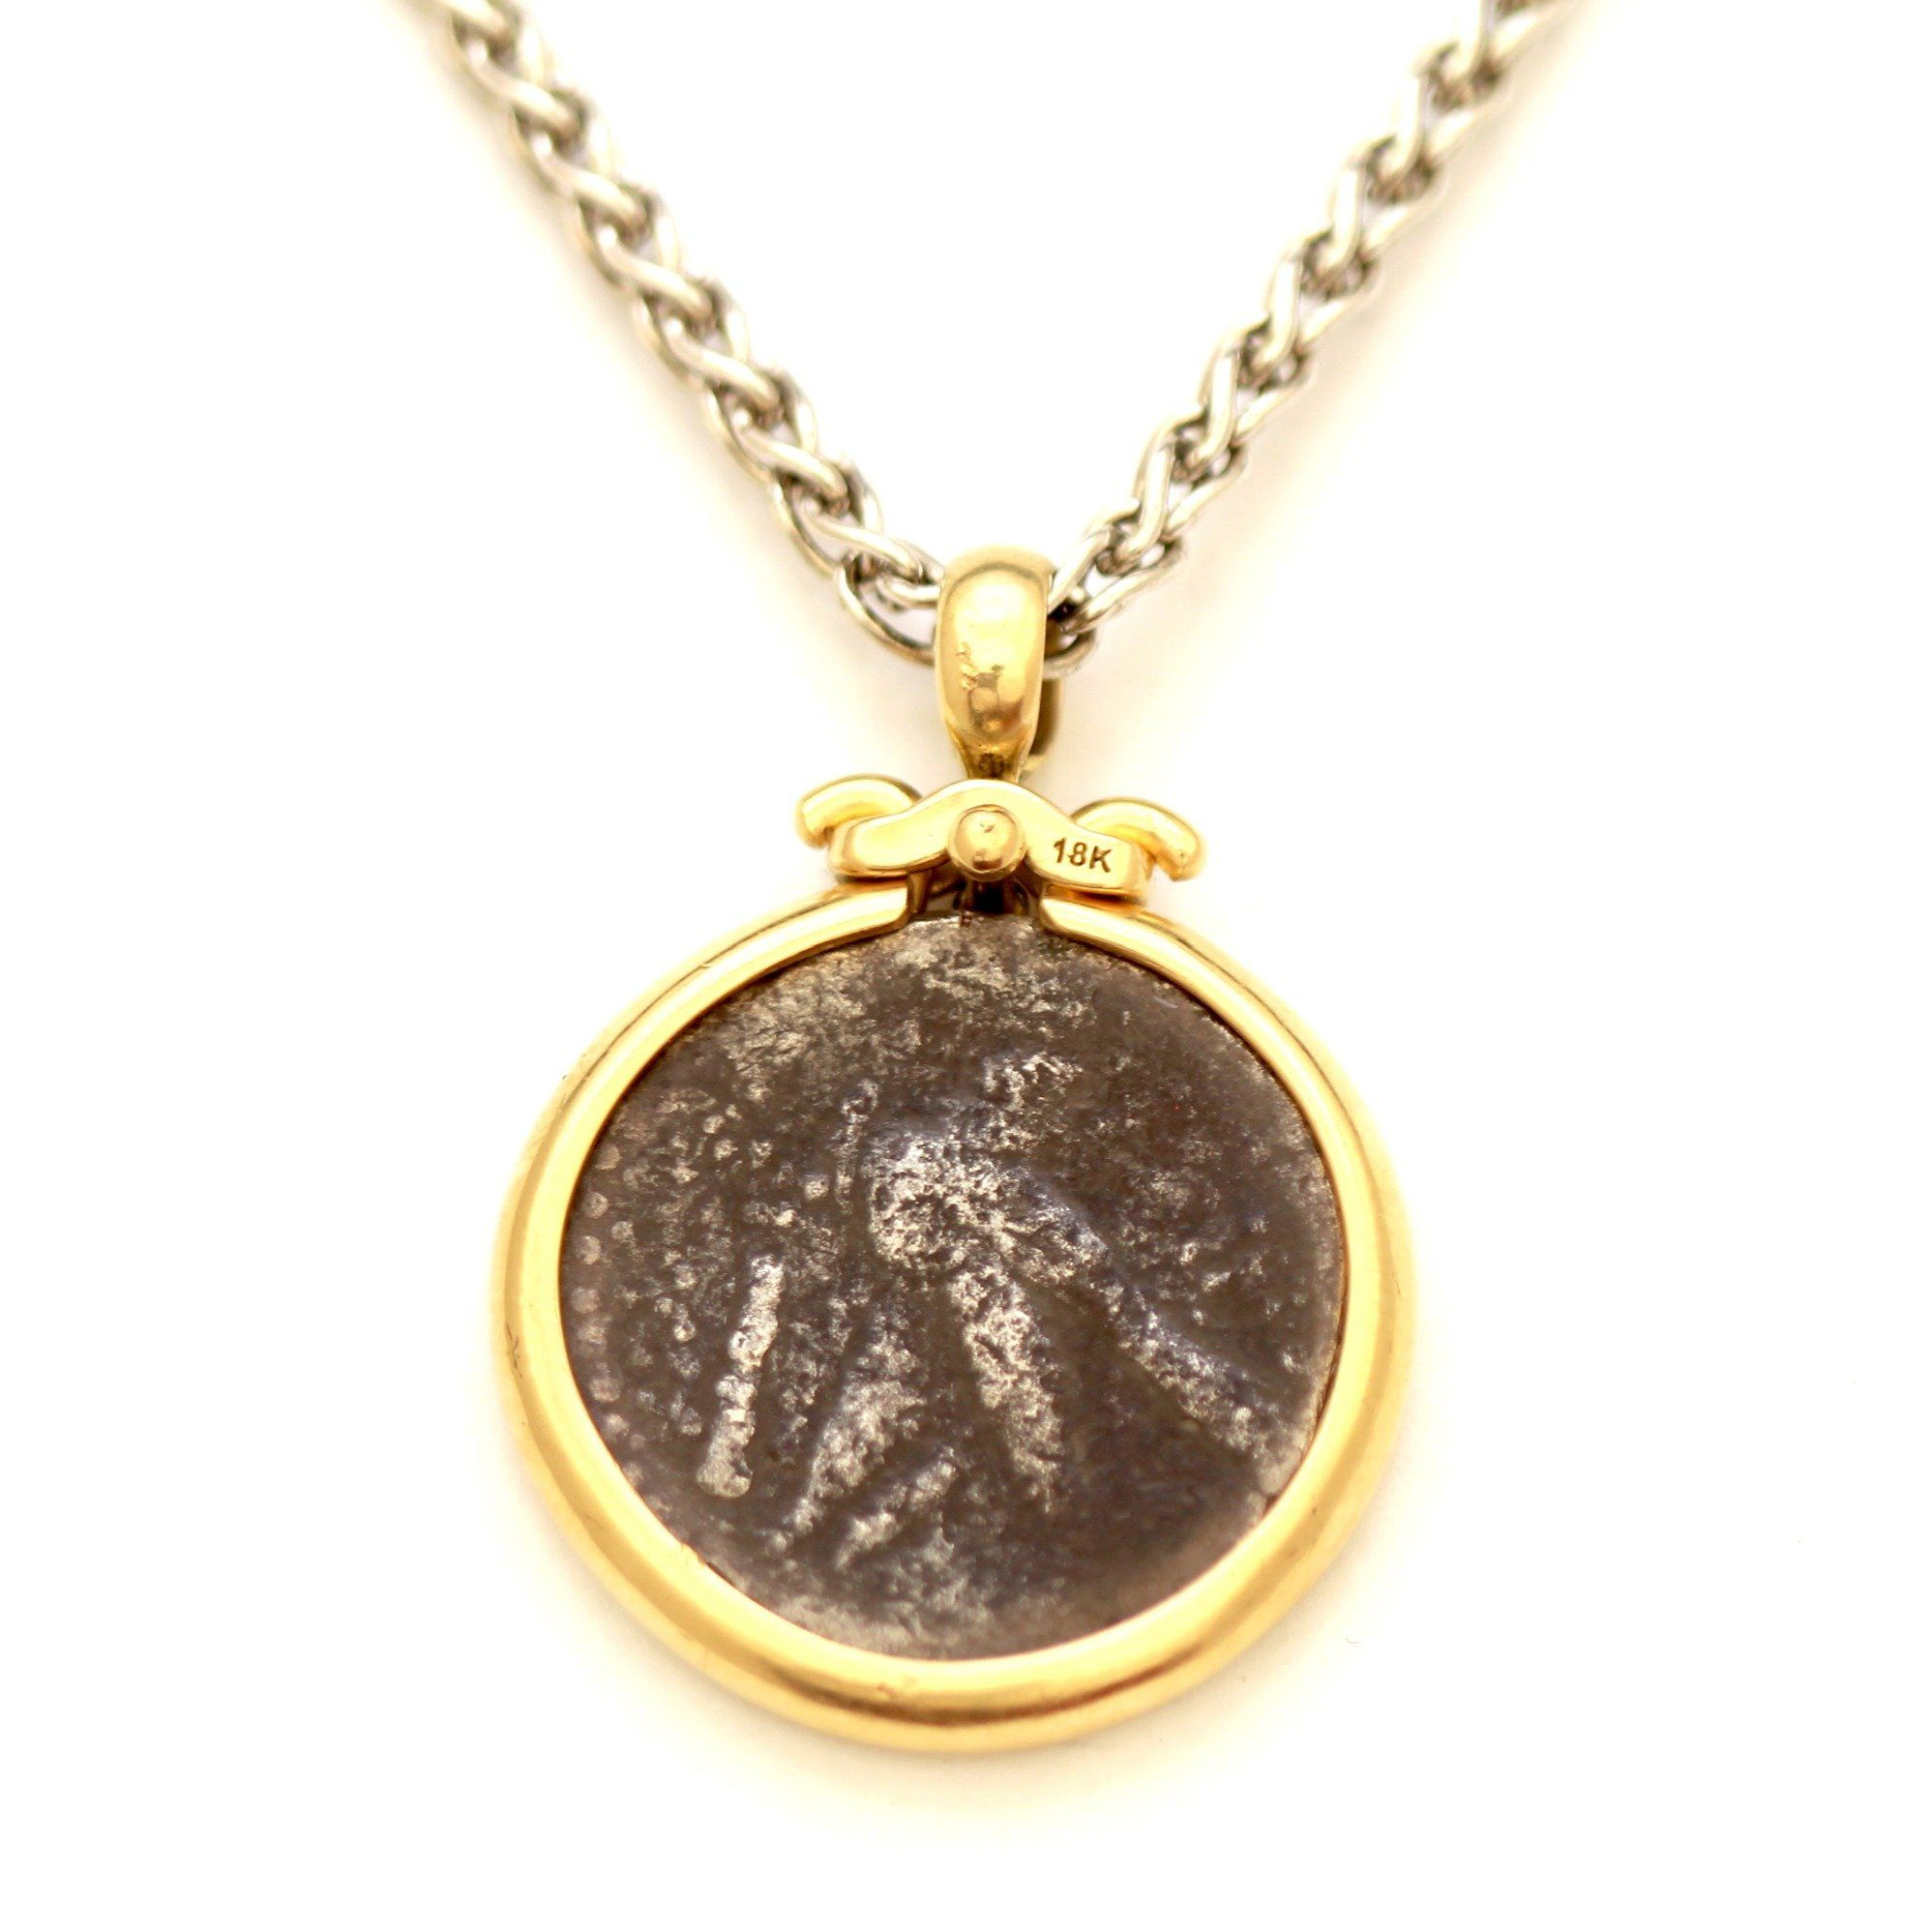 18K Gold Pendant, Silver Chain, Shekel of Tyre, ID12115, Certificate - Erez Ancient Coin Jewelry, ancient coin jewelry, men jewelry, genuine ancient coins, made in the US